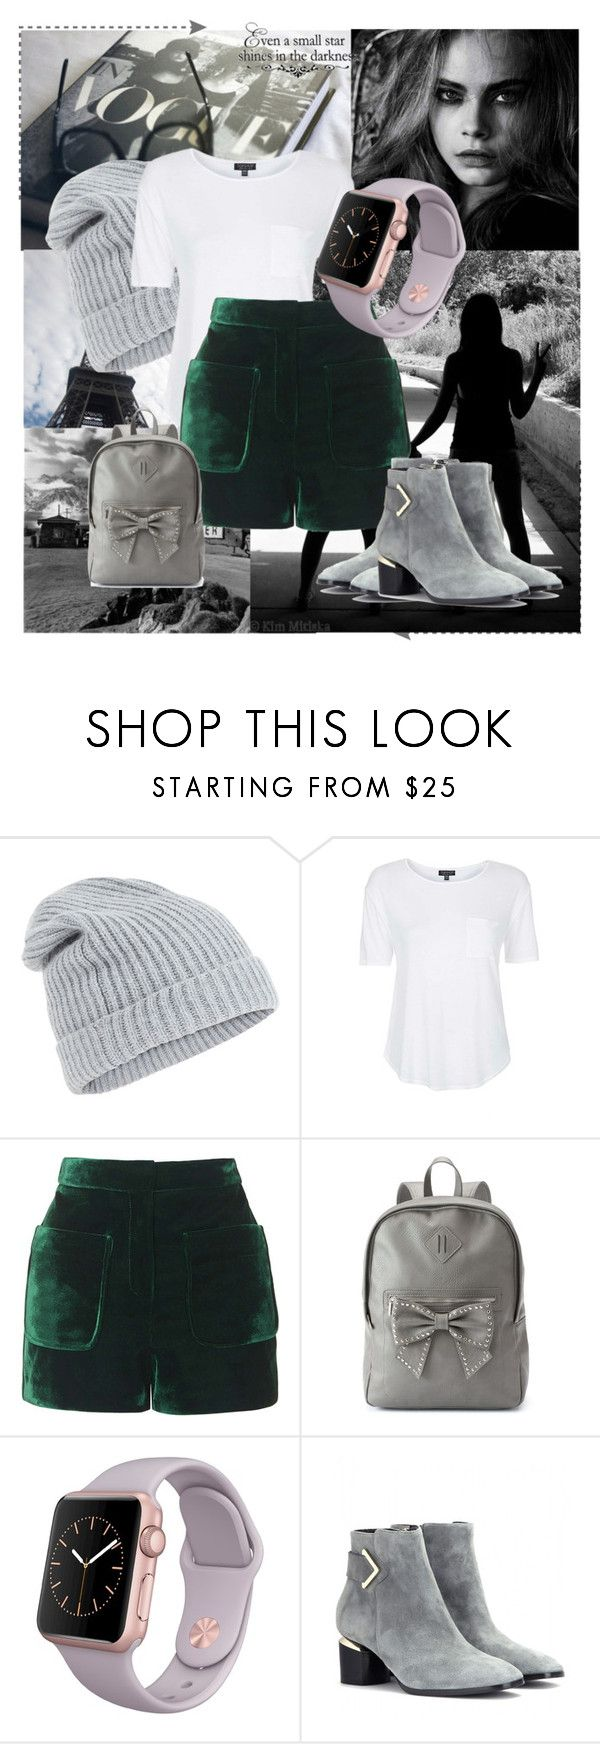 Untitled #618 by camiisaigos15 on Polyvore featuring Topshop, Nicholas Kirkwood, Candie's and Accessorize